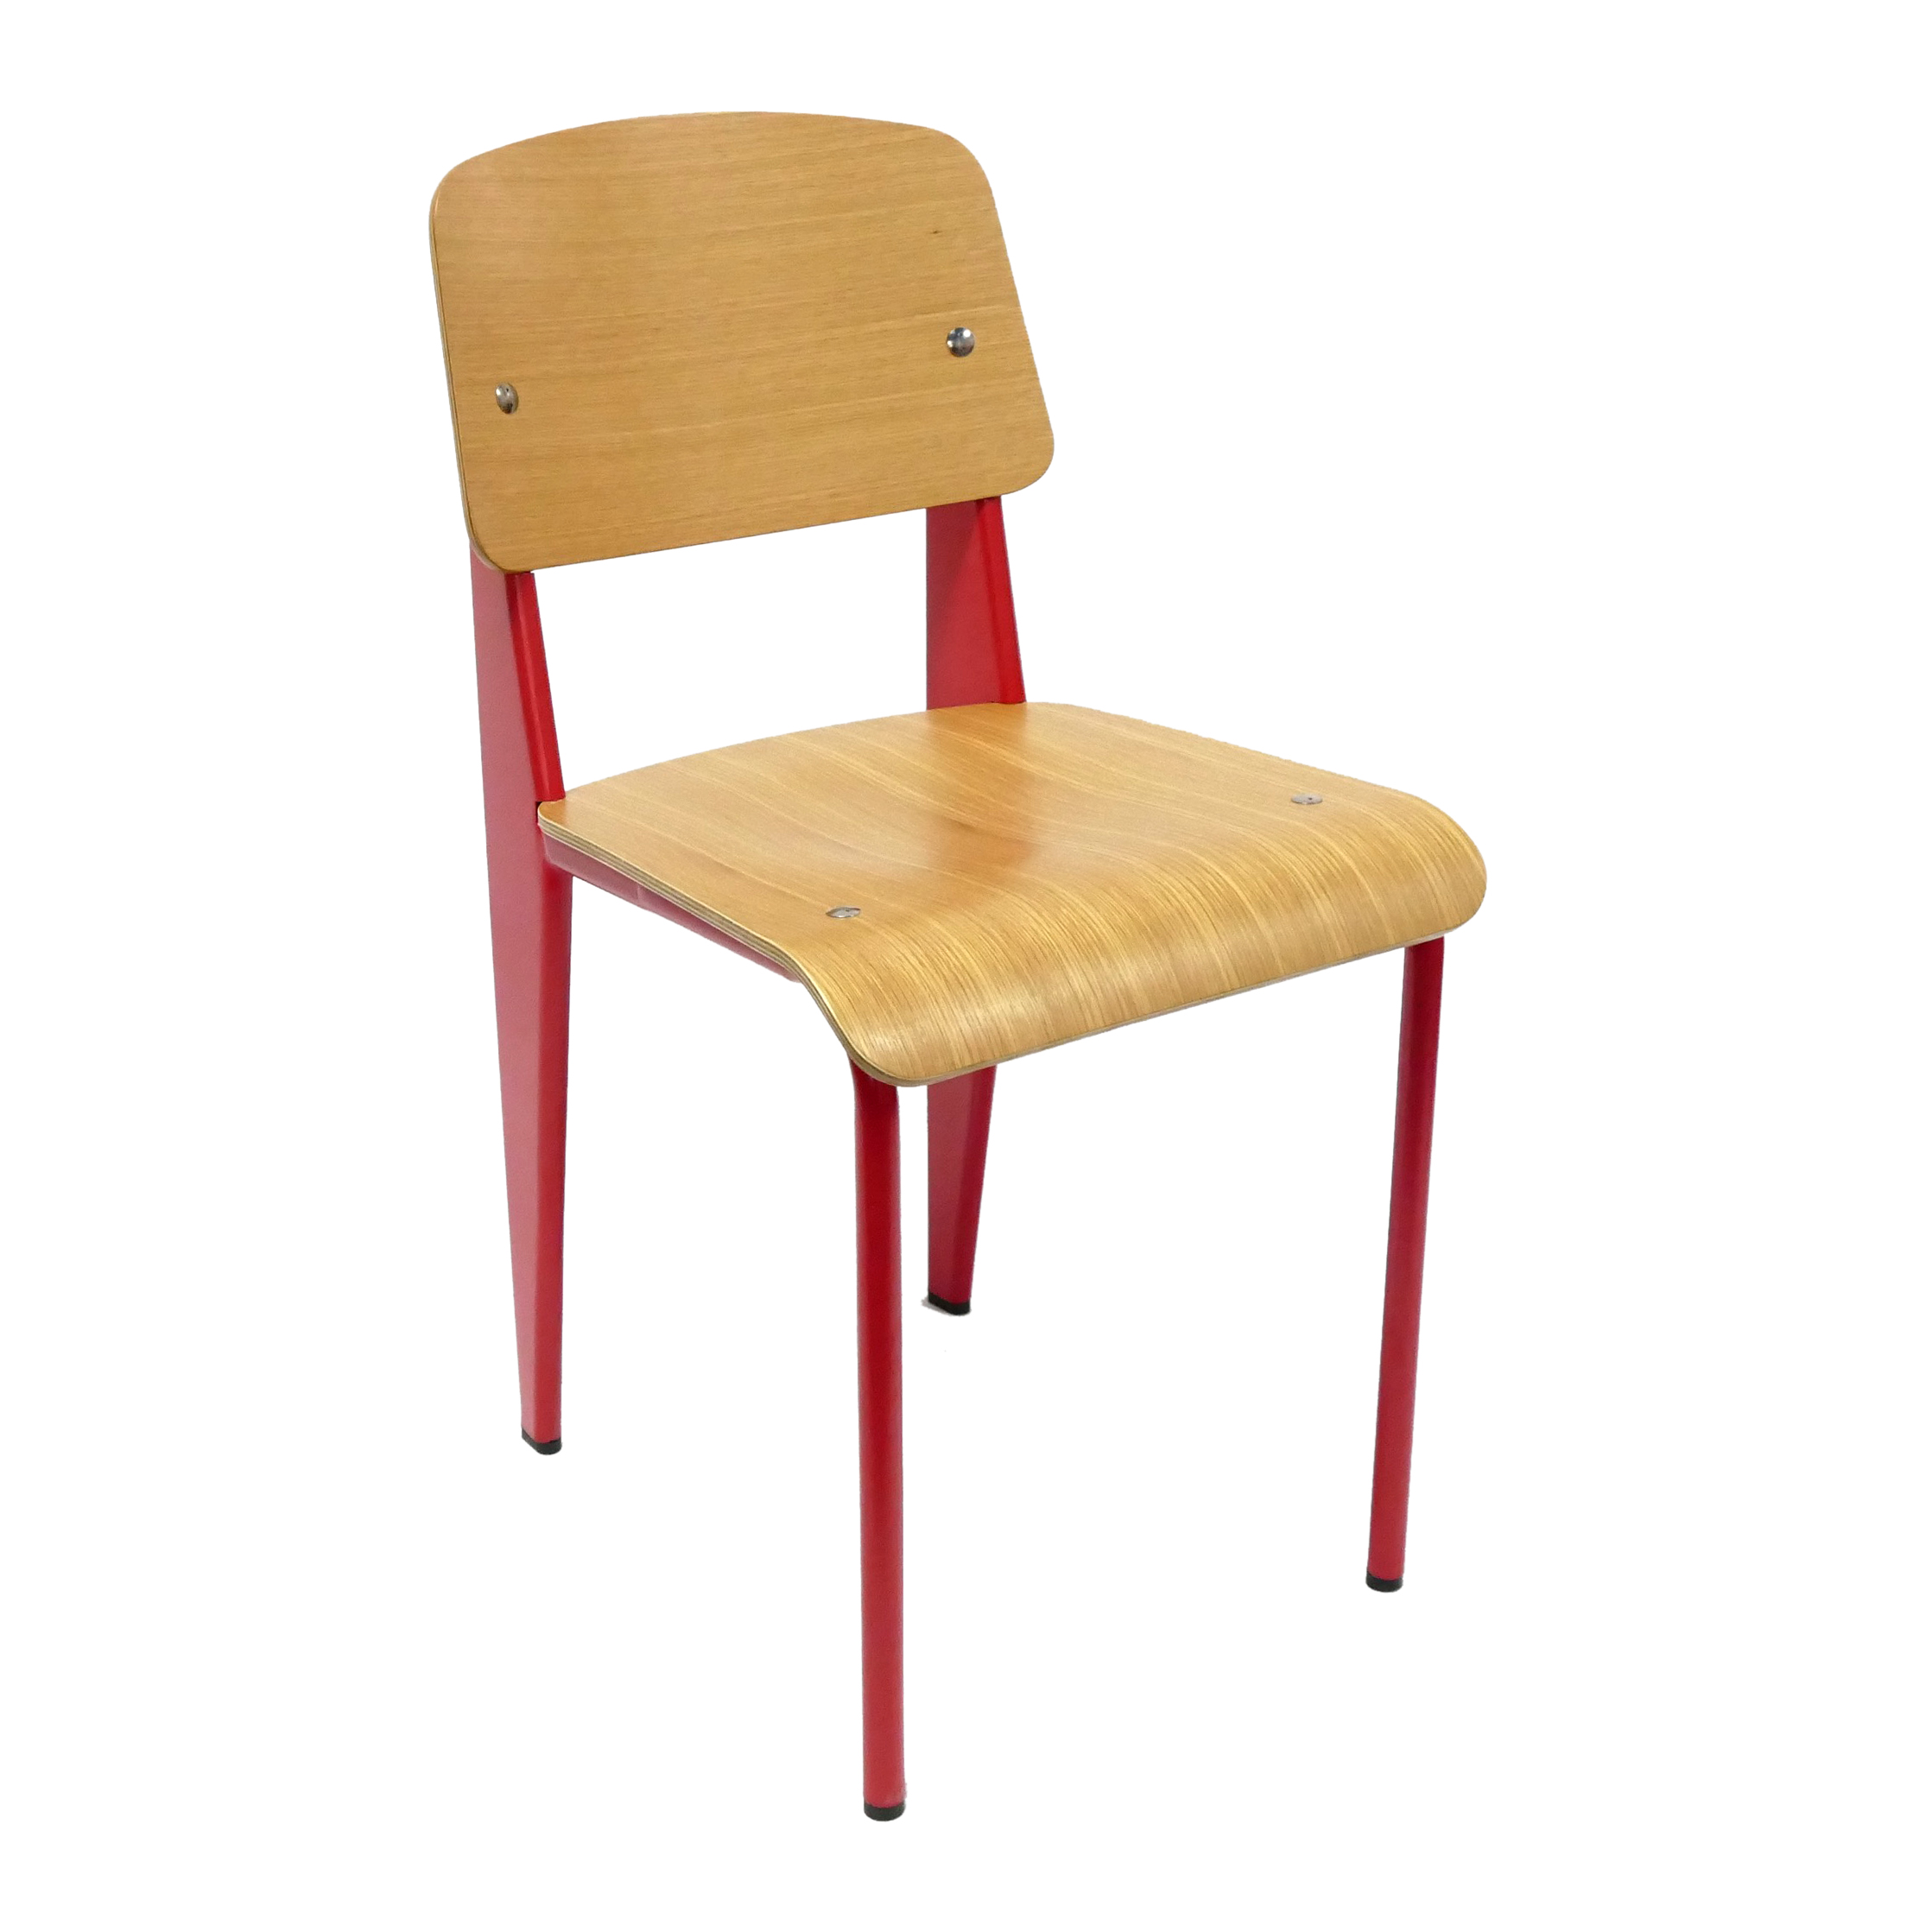 Standard <strong>Jean</strong> Prouve Dining Chair with wooden seat and back rest